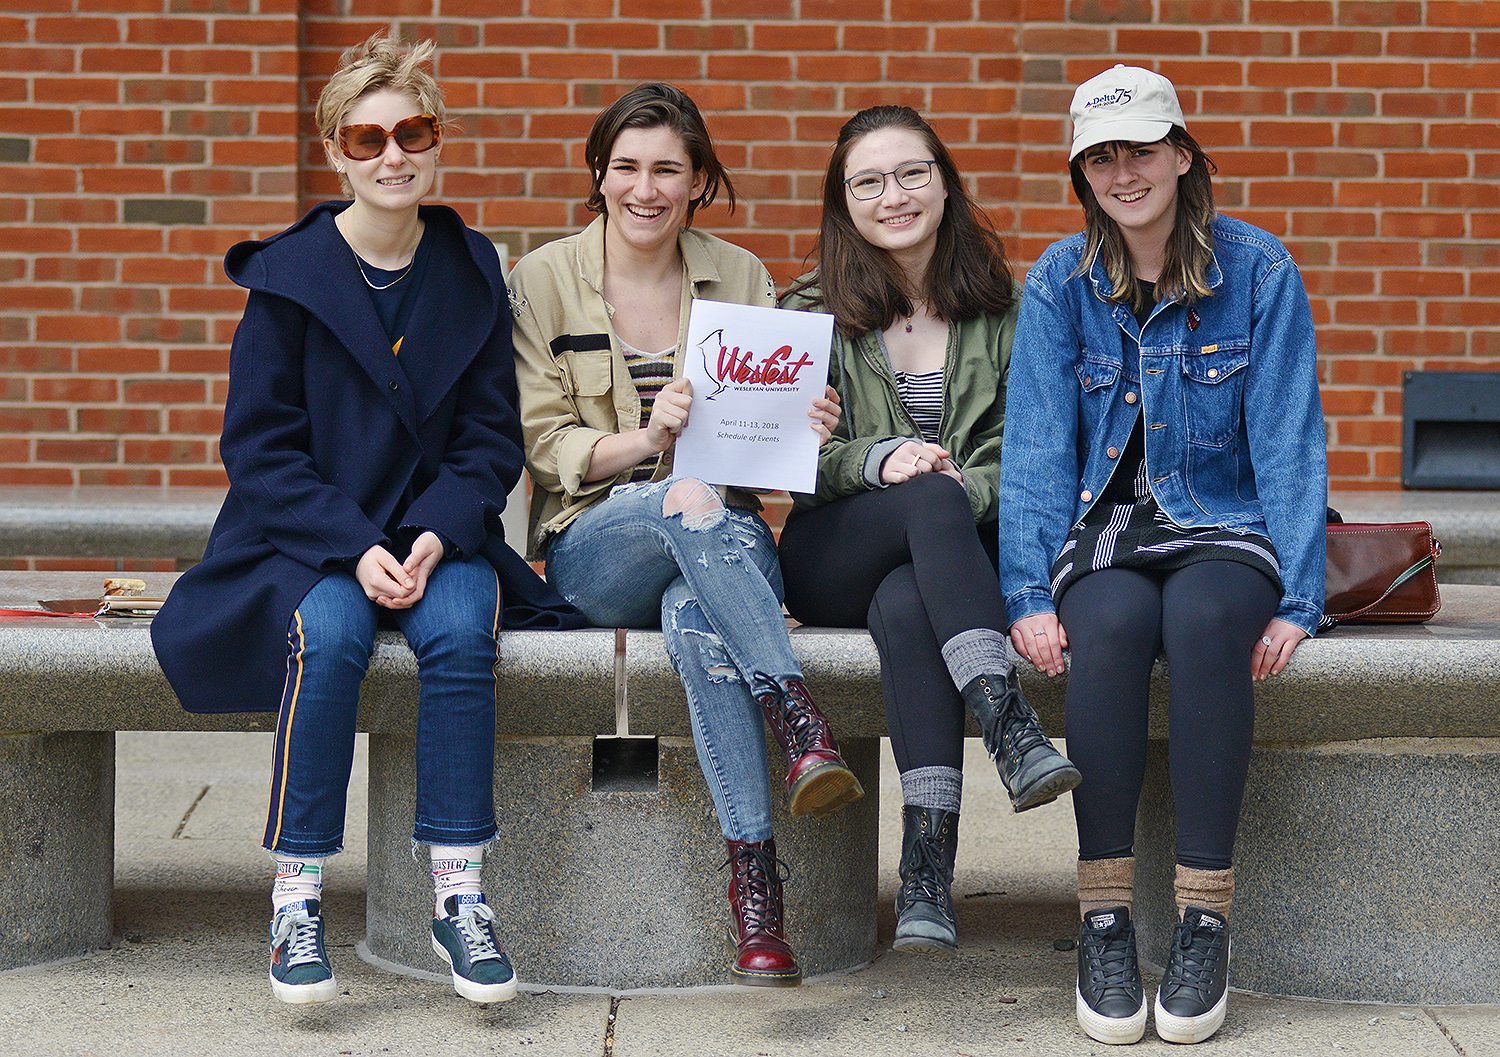 Hundreds of admitted Class of 2022 students and their families attended WesFest April 10-12 on campus. Guests had the opportunity to experience university life first-hand and explore the diverse opportunities that a Wesleyan education has to offer.